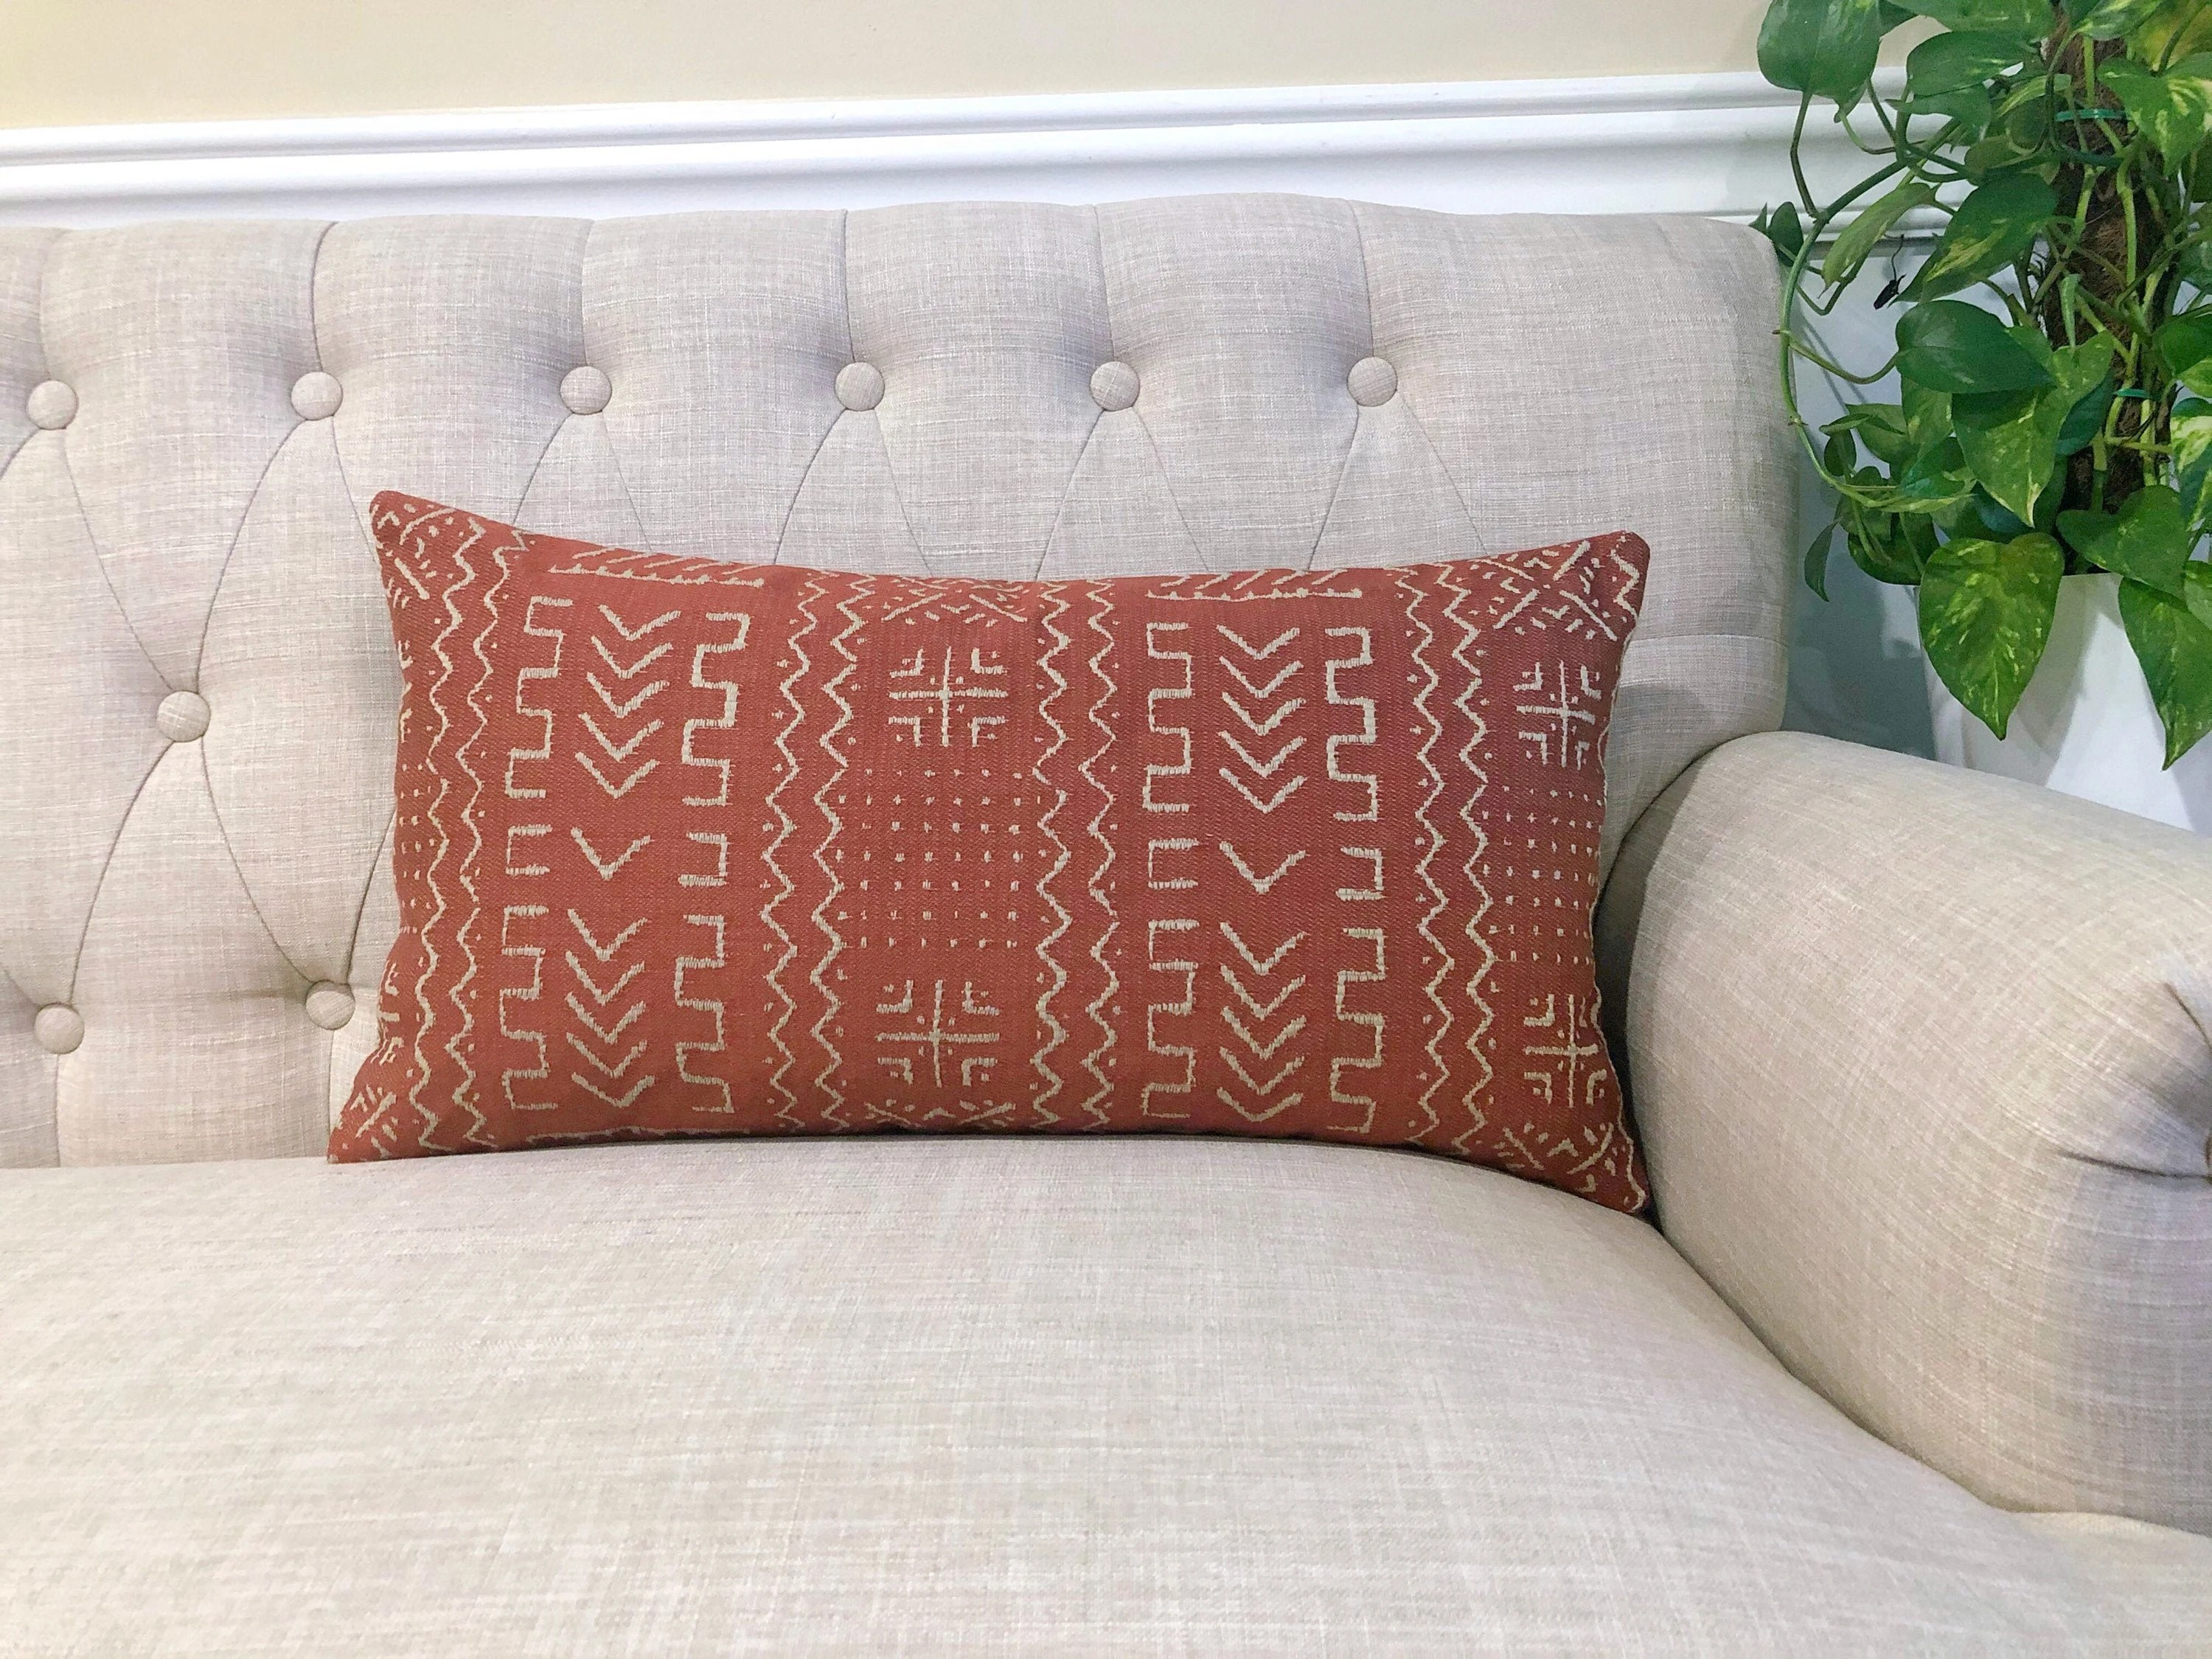 12x18 pillow cover etsy